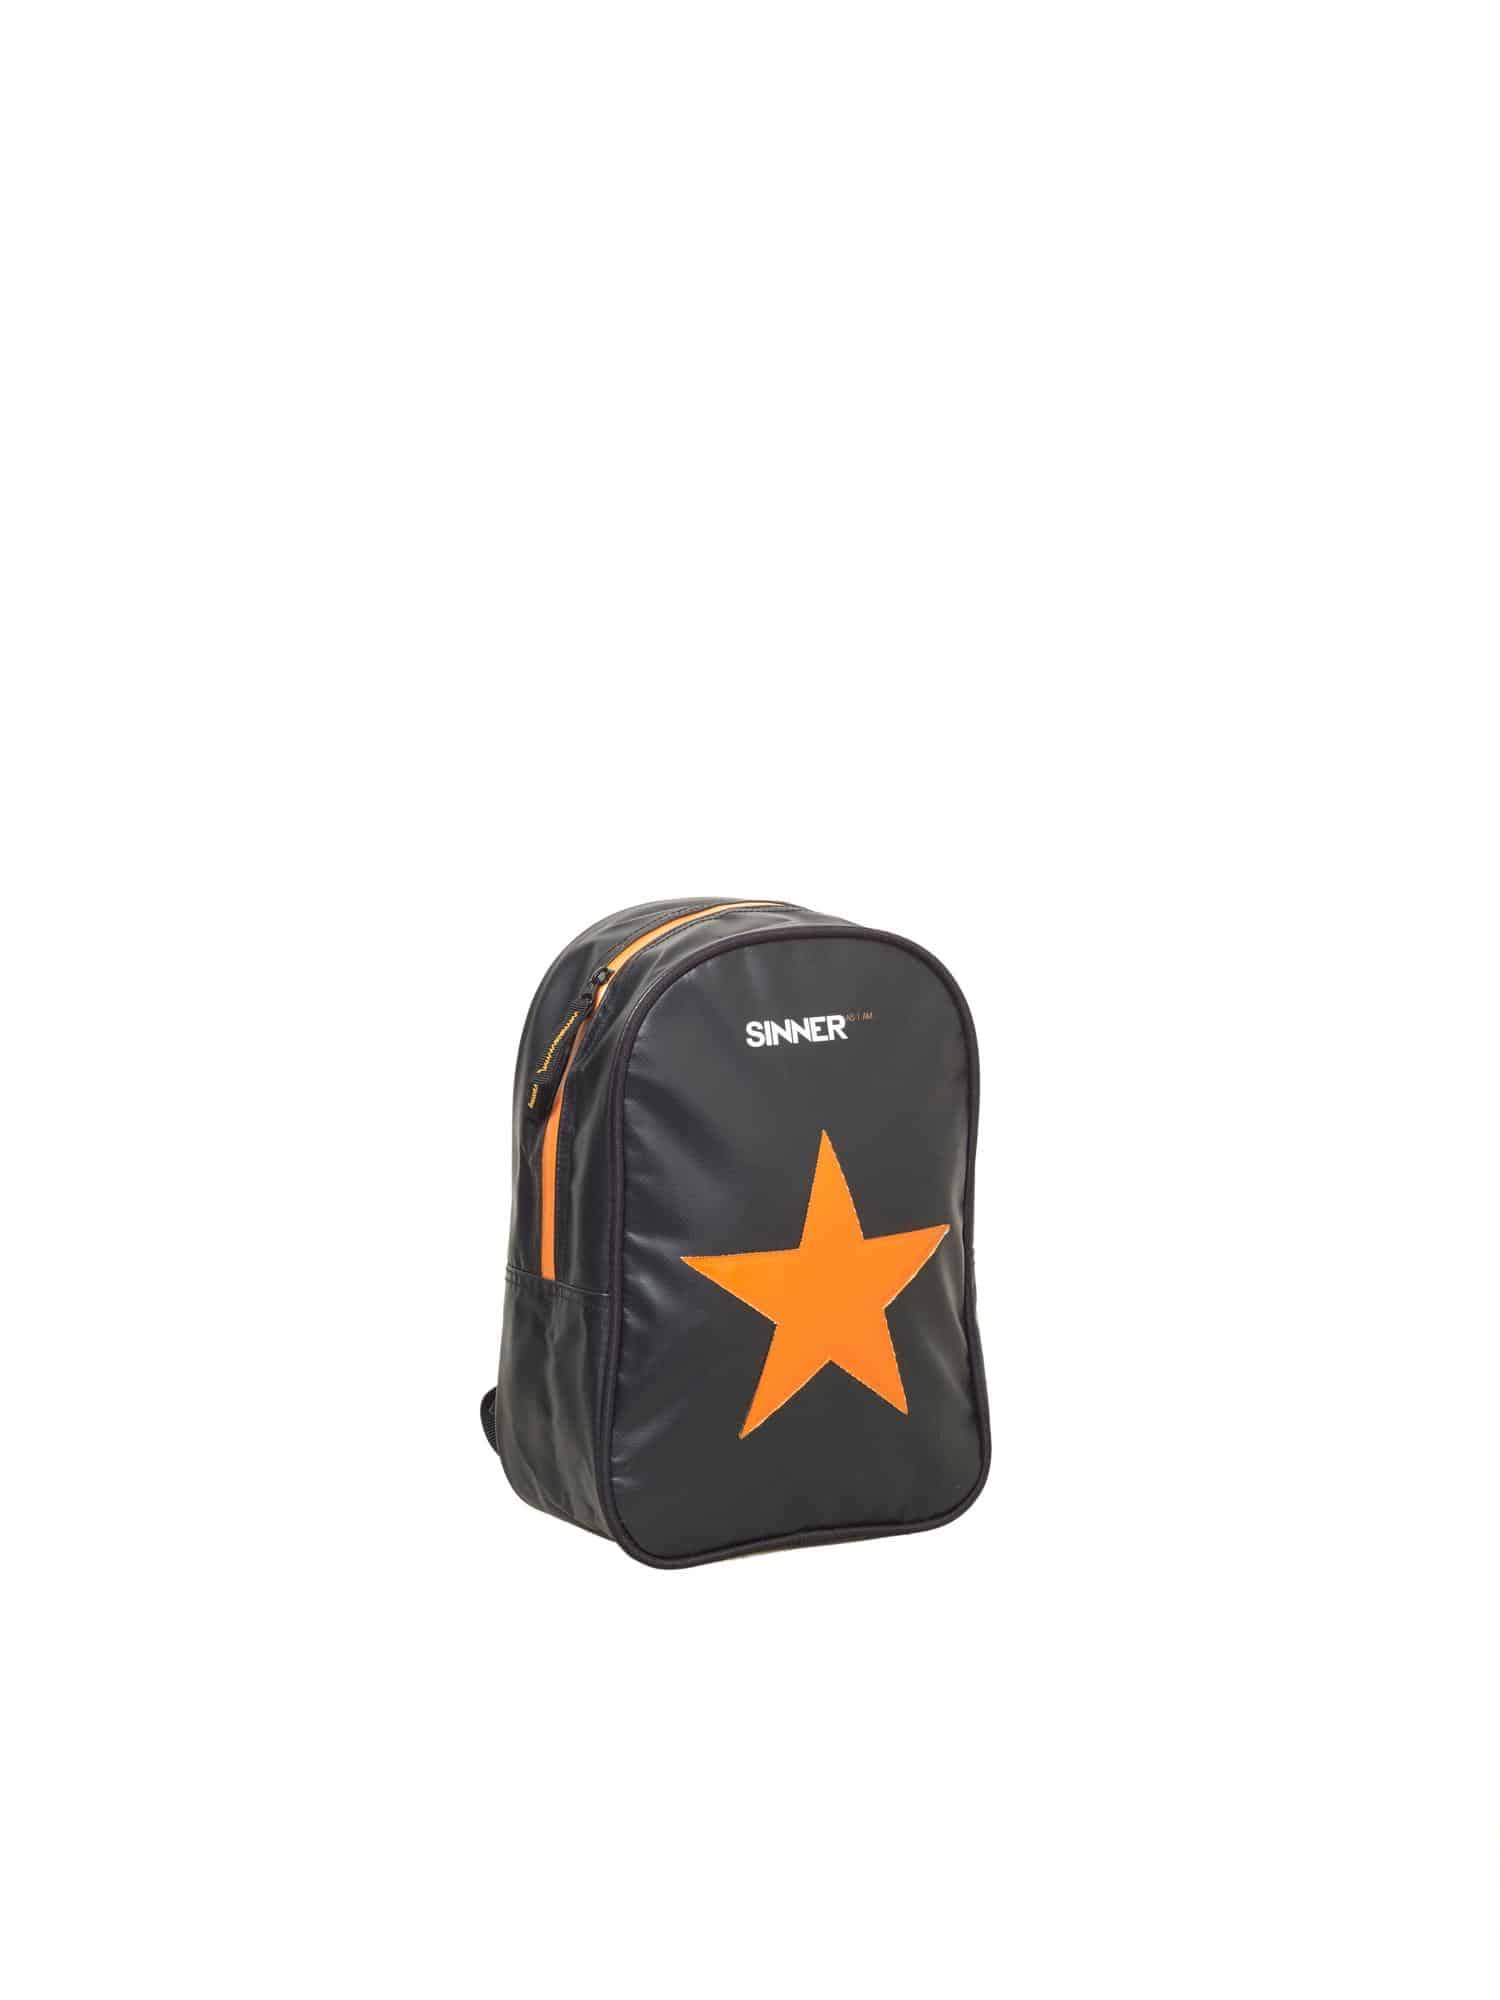 SIAC-305-10[1]backpack